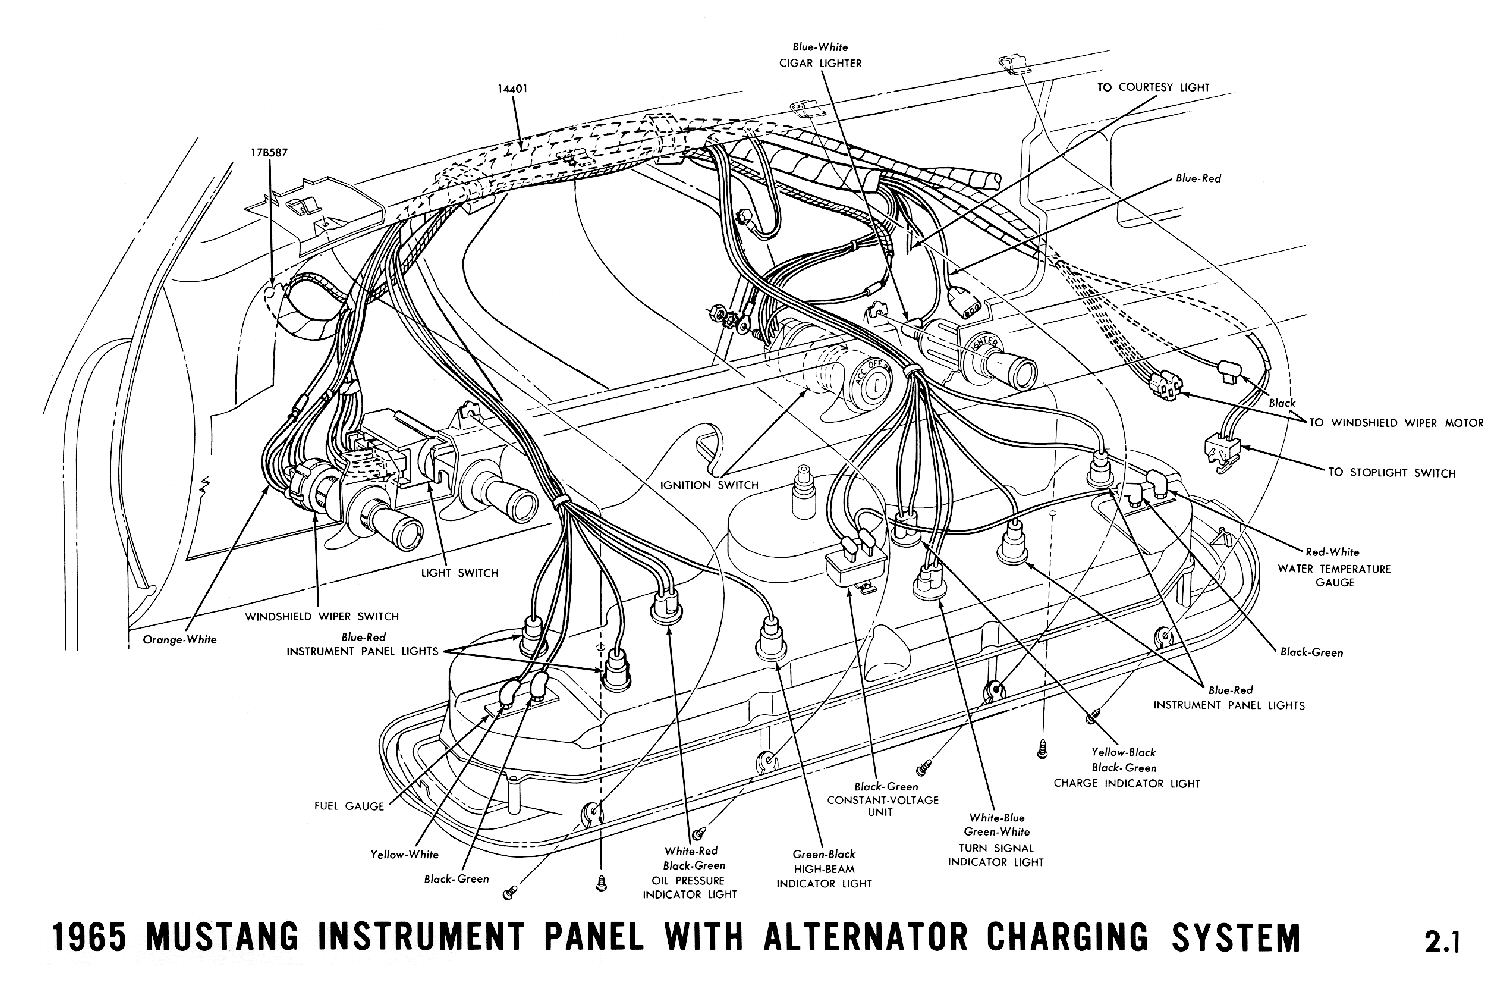 1965a 1965 mustang wiring diagrams average joe restoration 1965 f100 wiring harness at creativeand.co